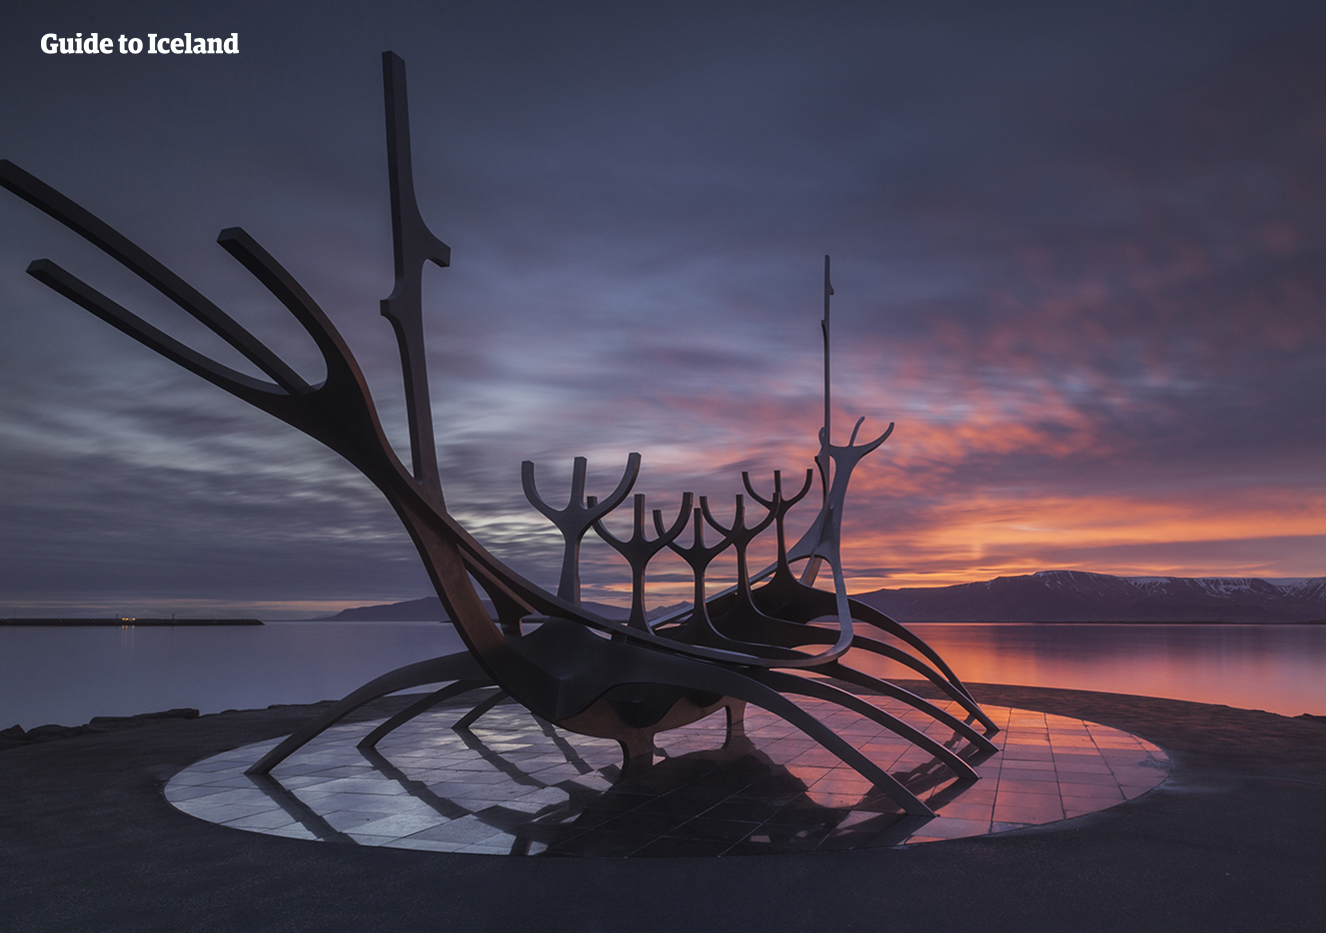 Reykjavik has many pieces of public art, like the Sun Voyager statue.